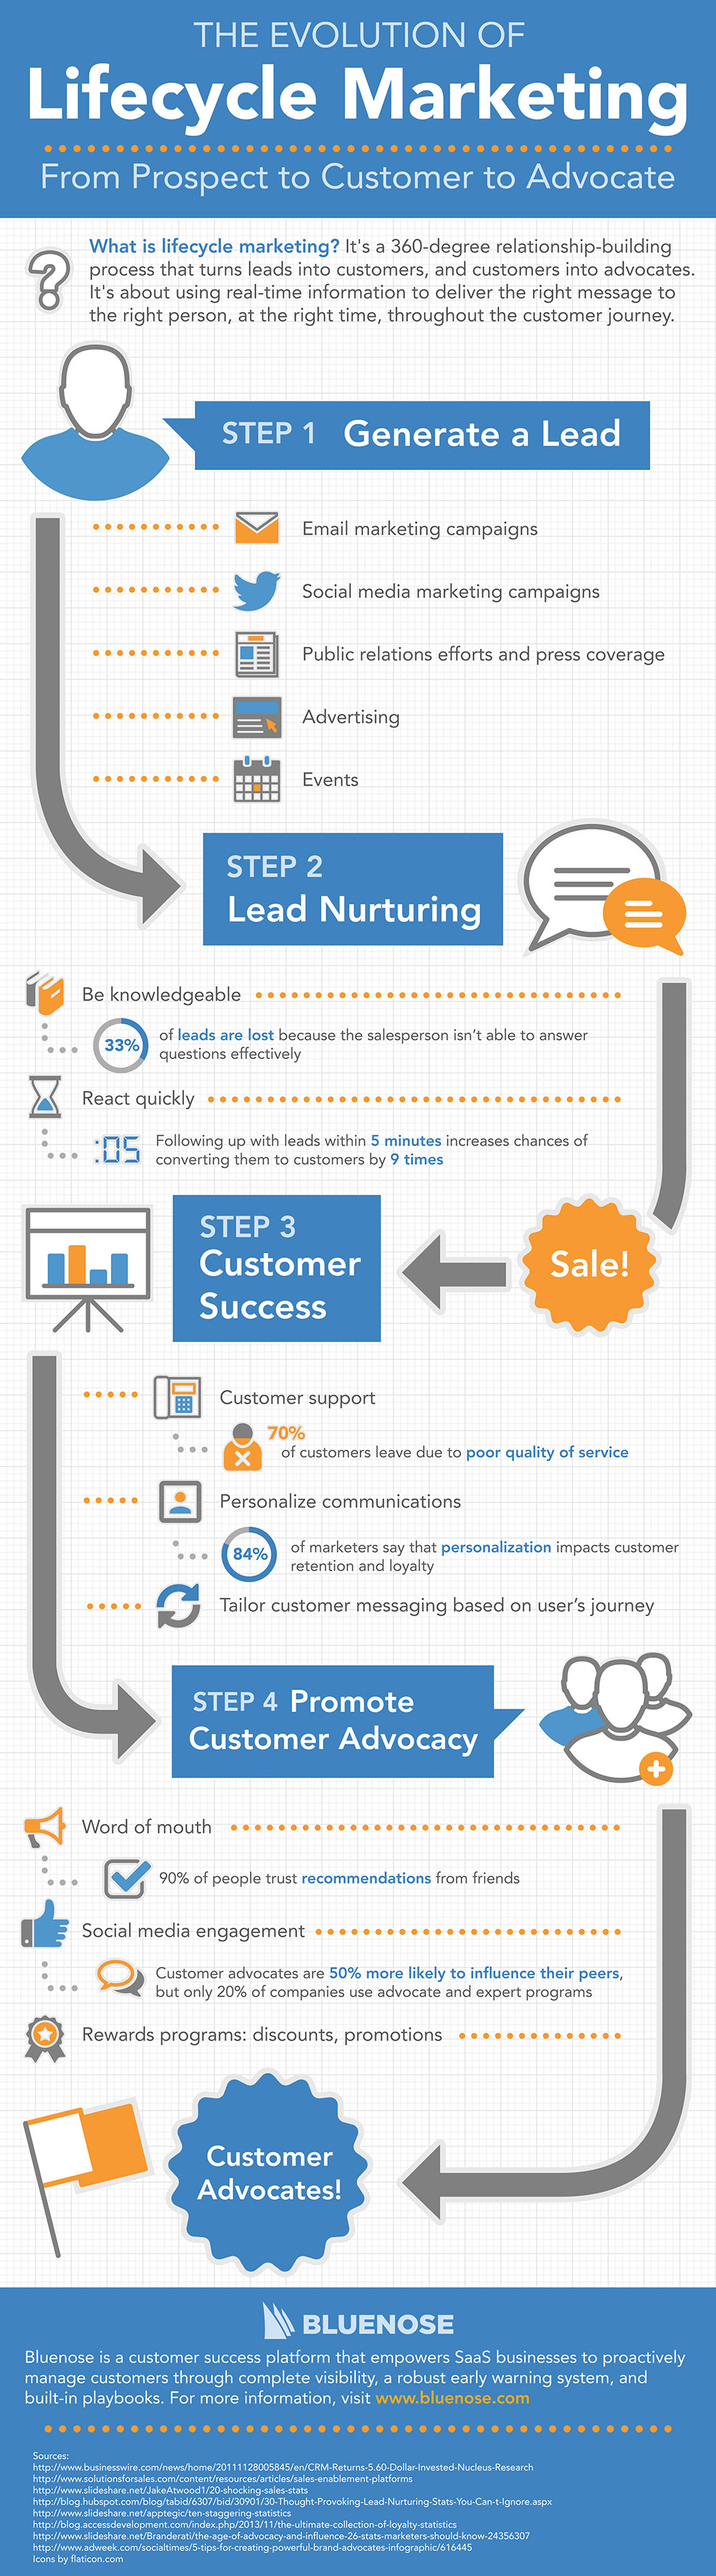 Lifecycle-Marketing-Infographic-v3_s